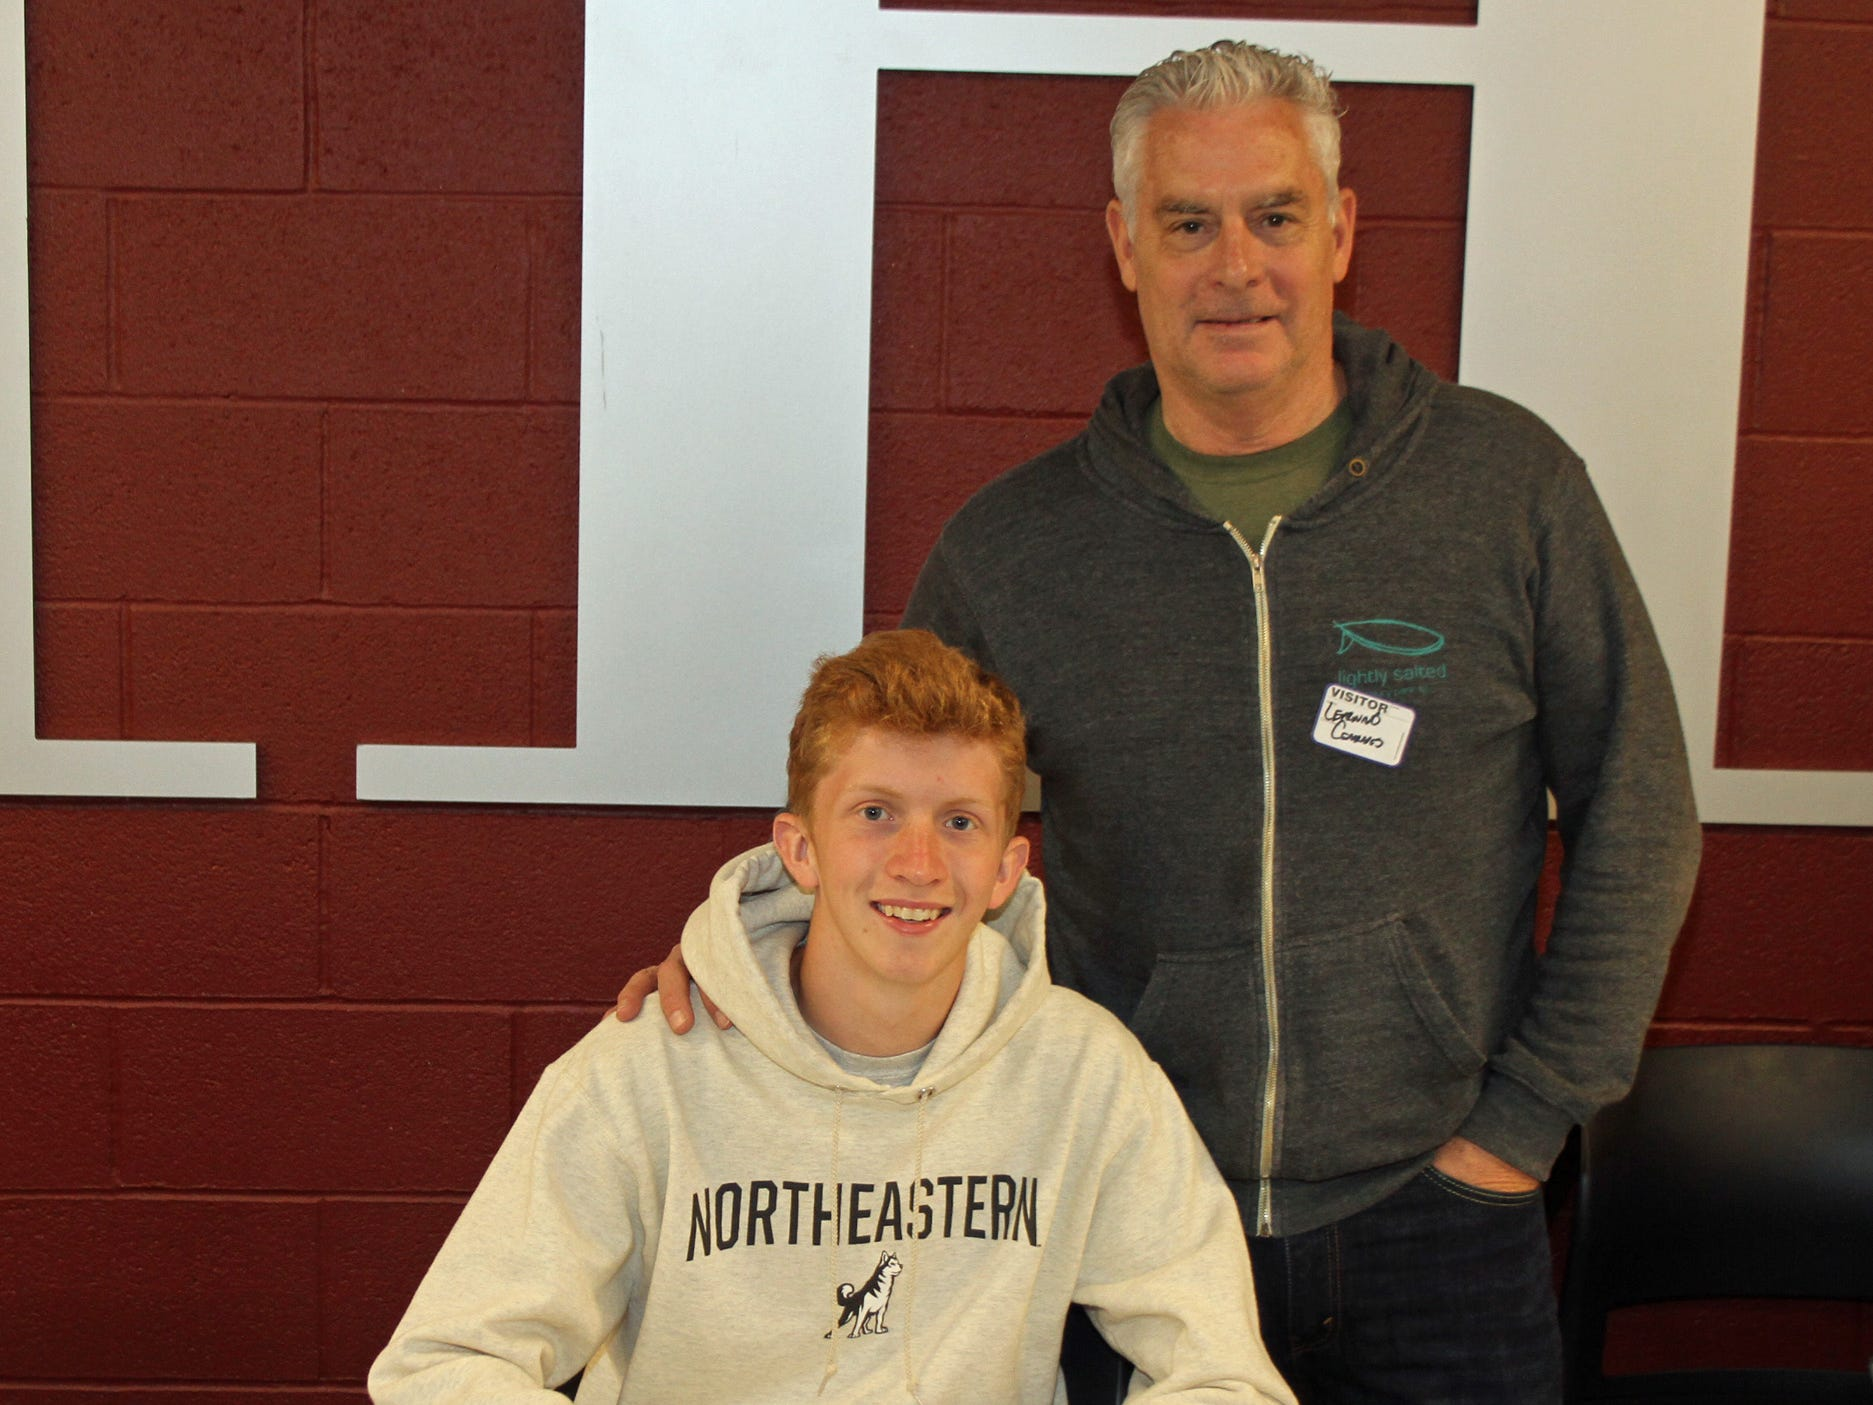 Morristown senior Patrick Mullen signed a National Letter of Intent with Northeastern track and field and cross country on Friday.